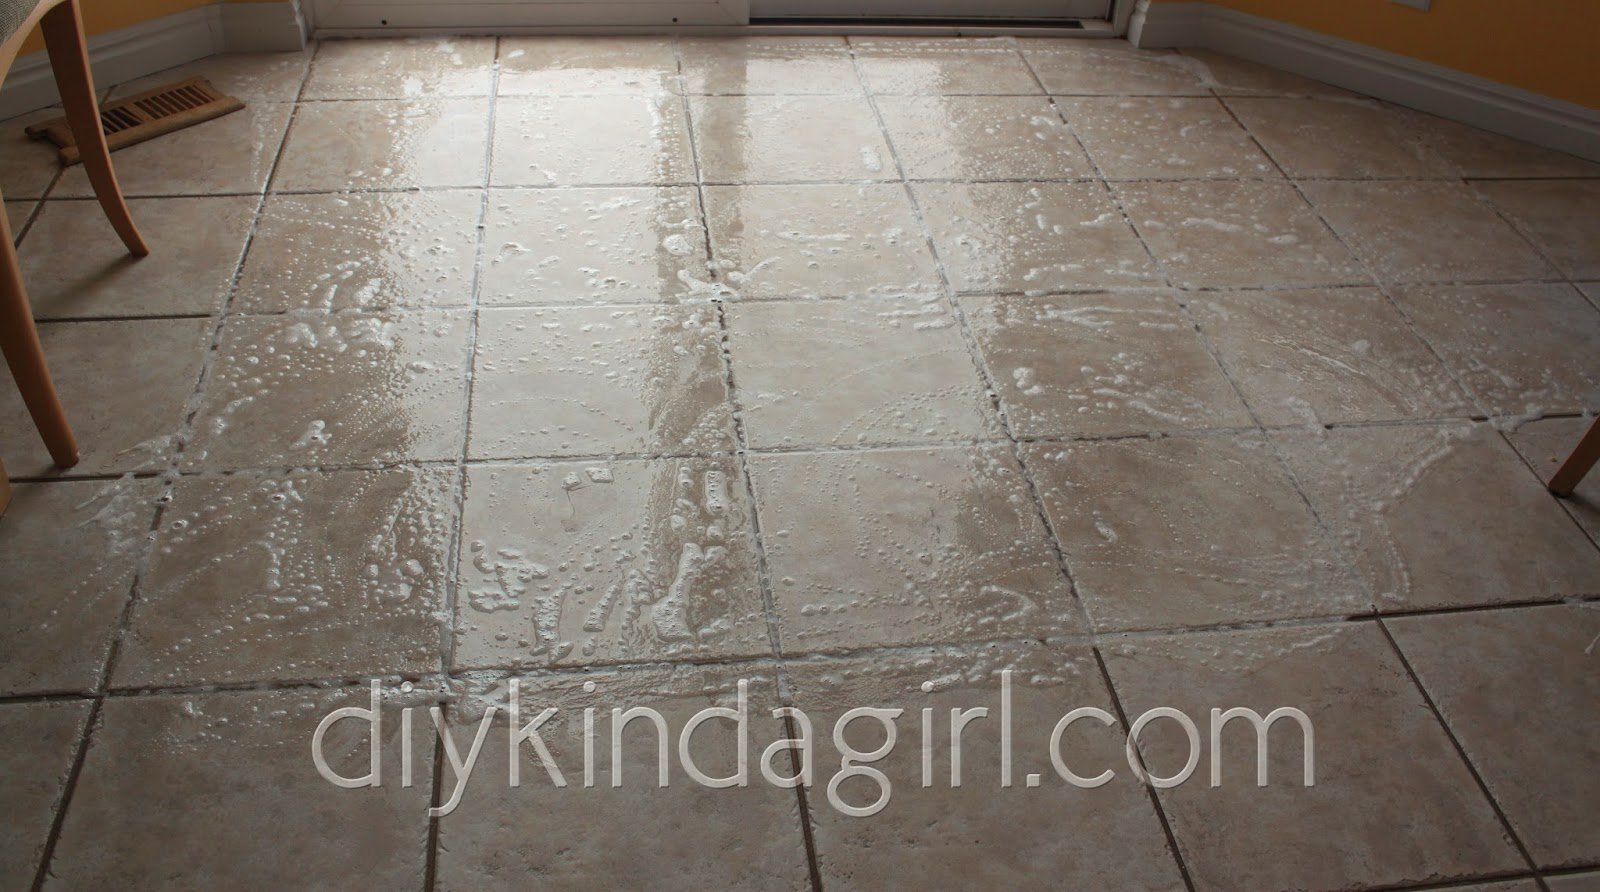 Diy Kinda Girl Diy Household Tip Cleaning Grout